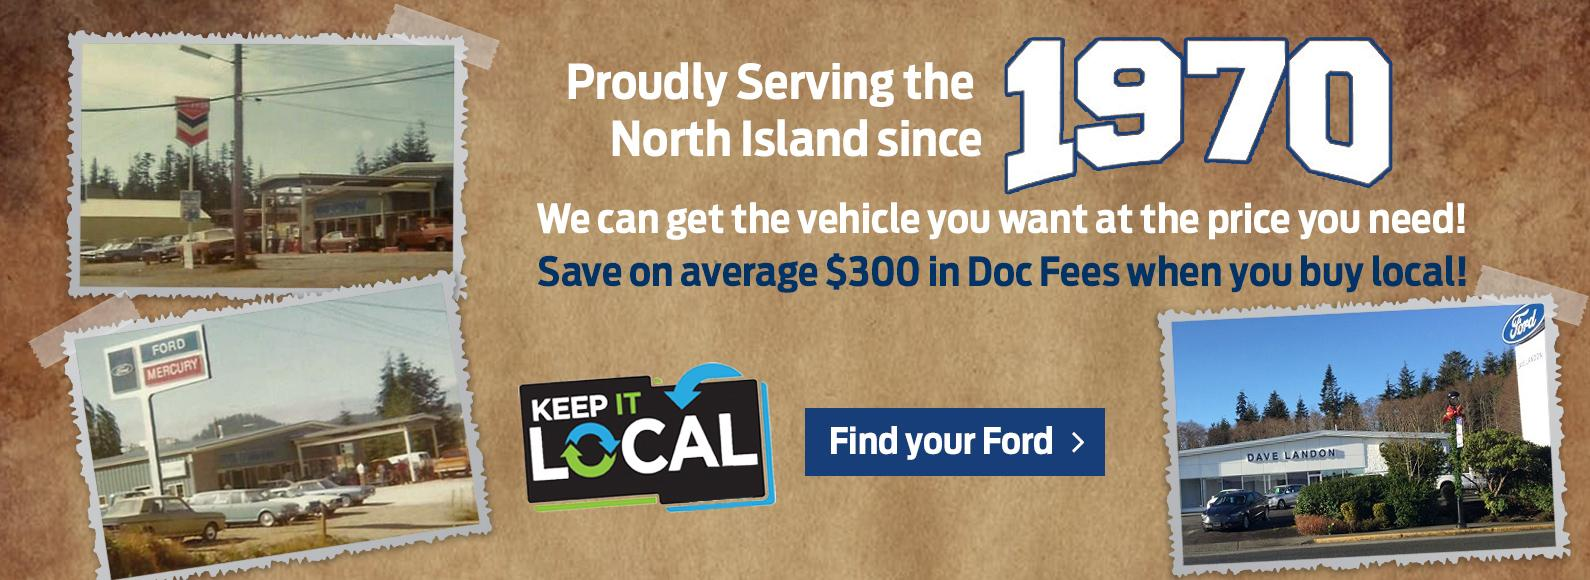 Welcome to Dave Landon Ford in Port Hardy!